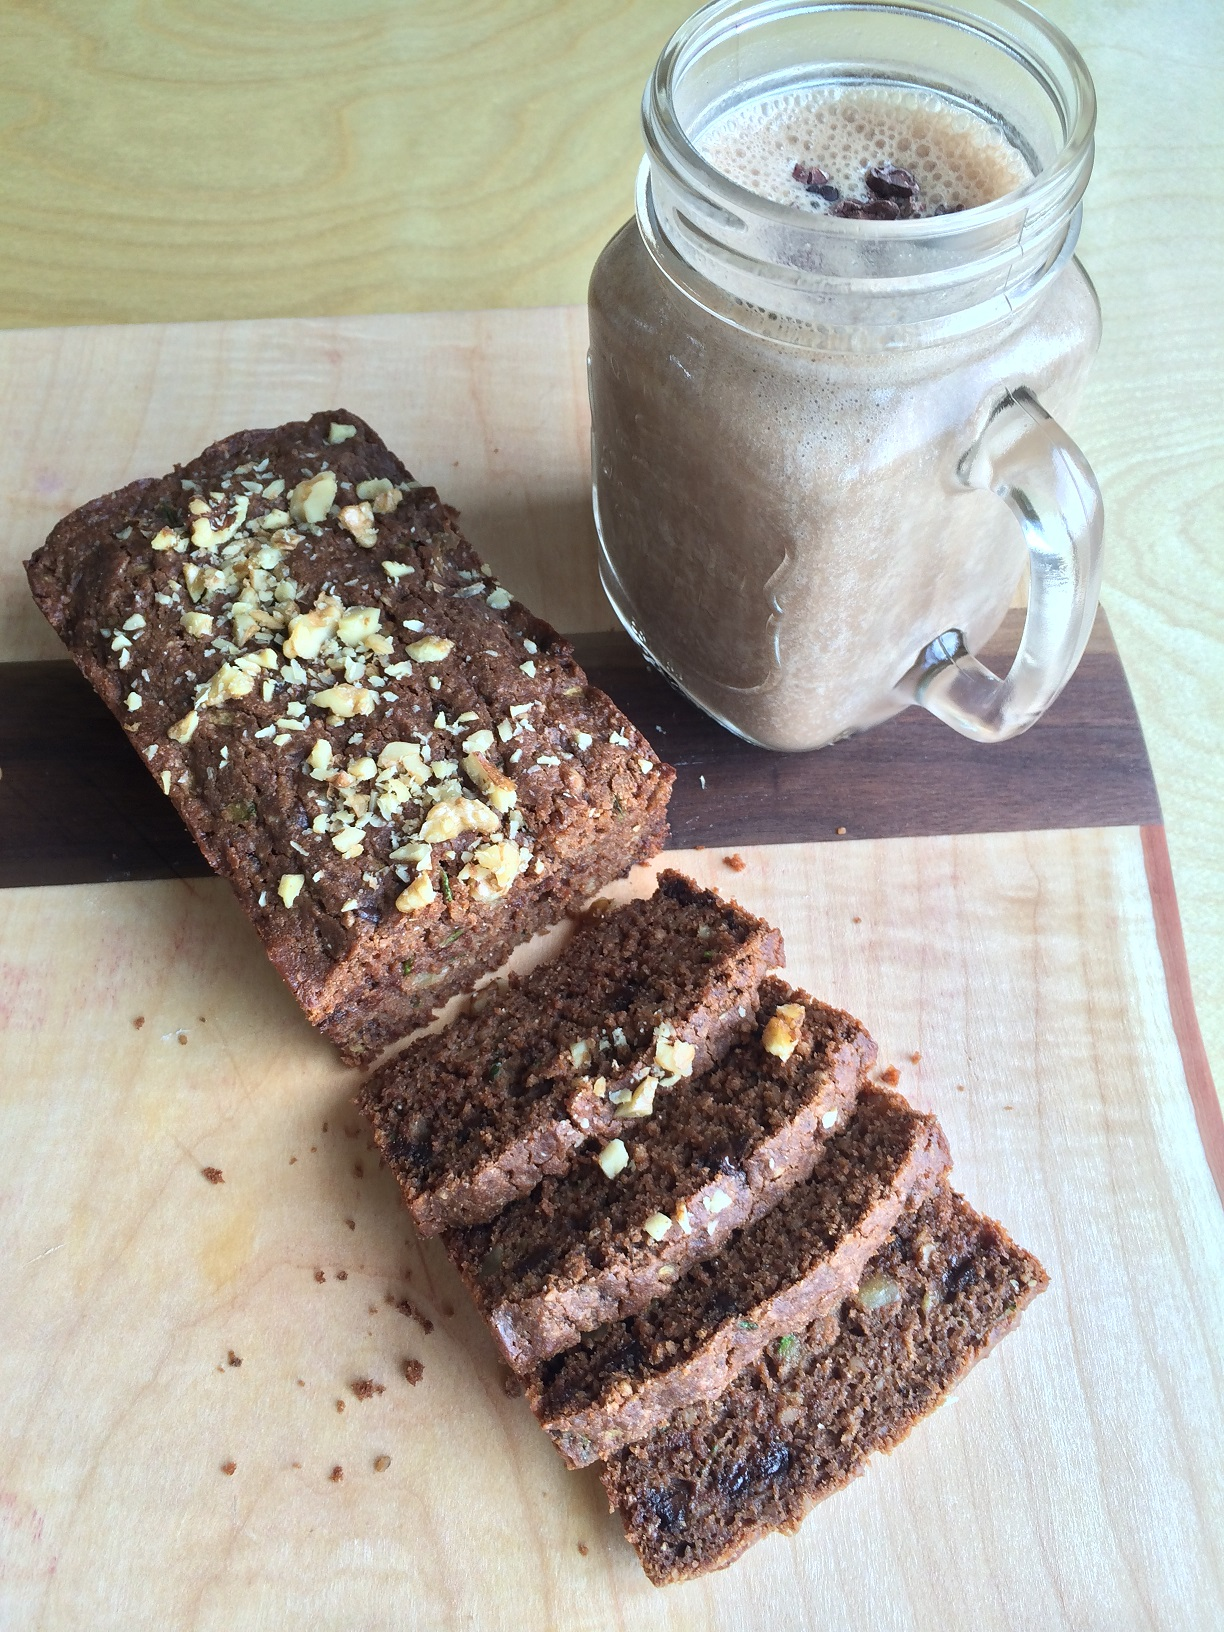 Chocolate Walnut Zucchini Bread